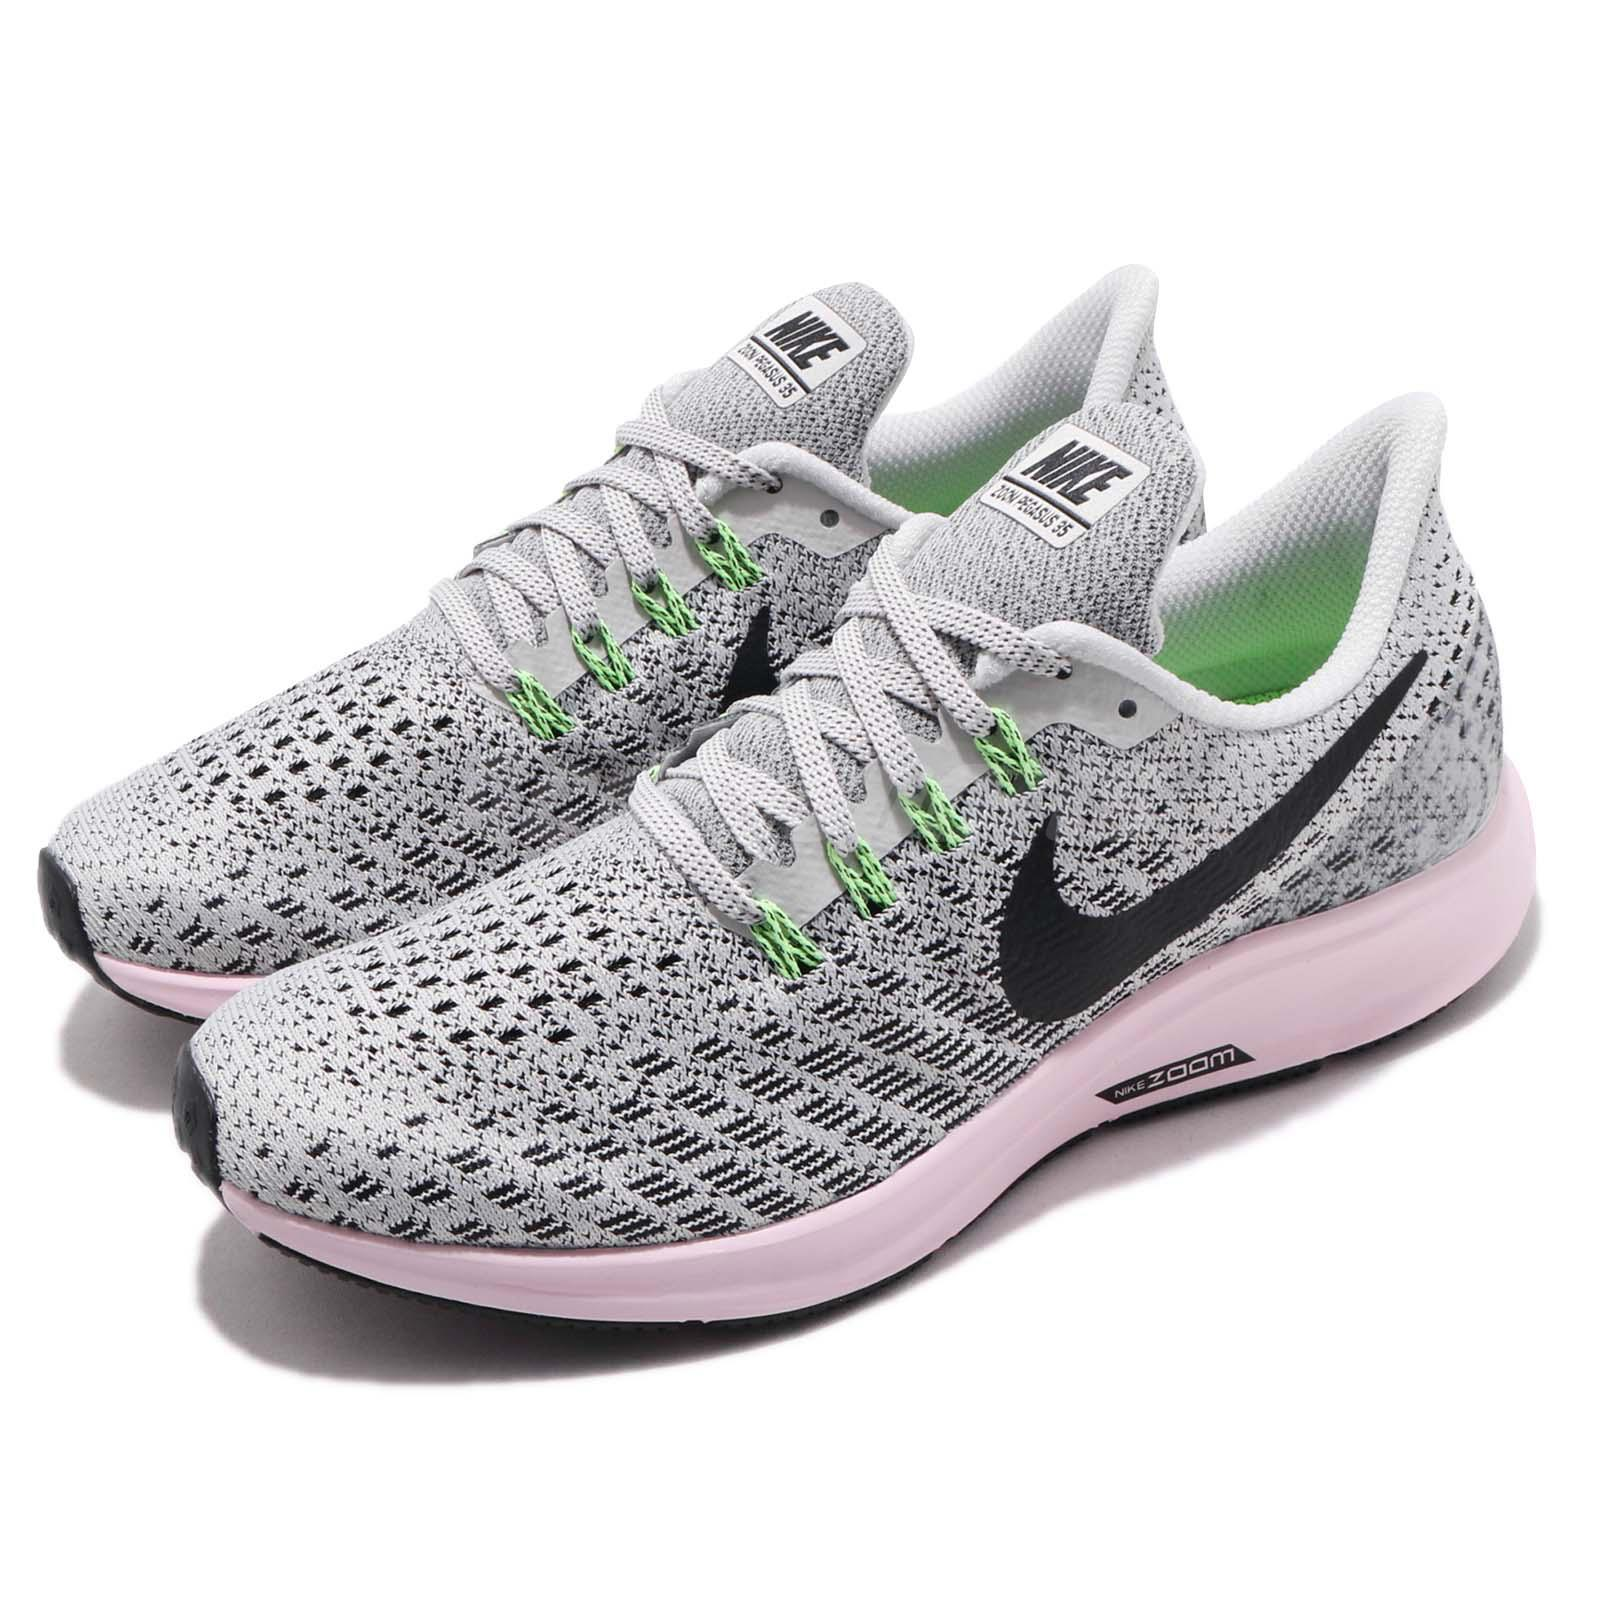 d96b292bf14a Details about Nike Wmns Air Zoom Pegasus 35 Vast Grey Black Pink Women  Running Shoe 942855-011